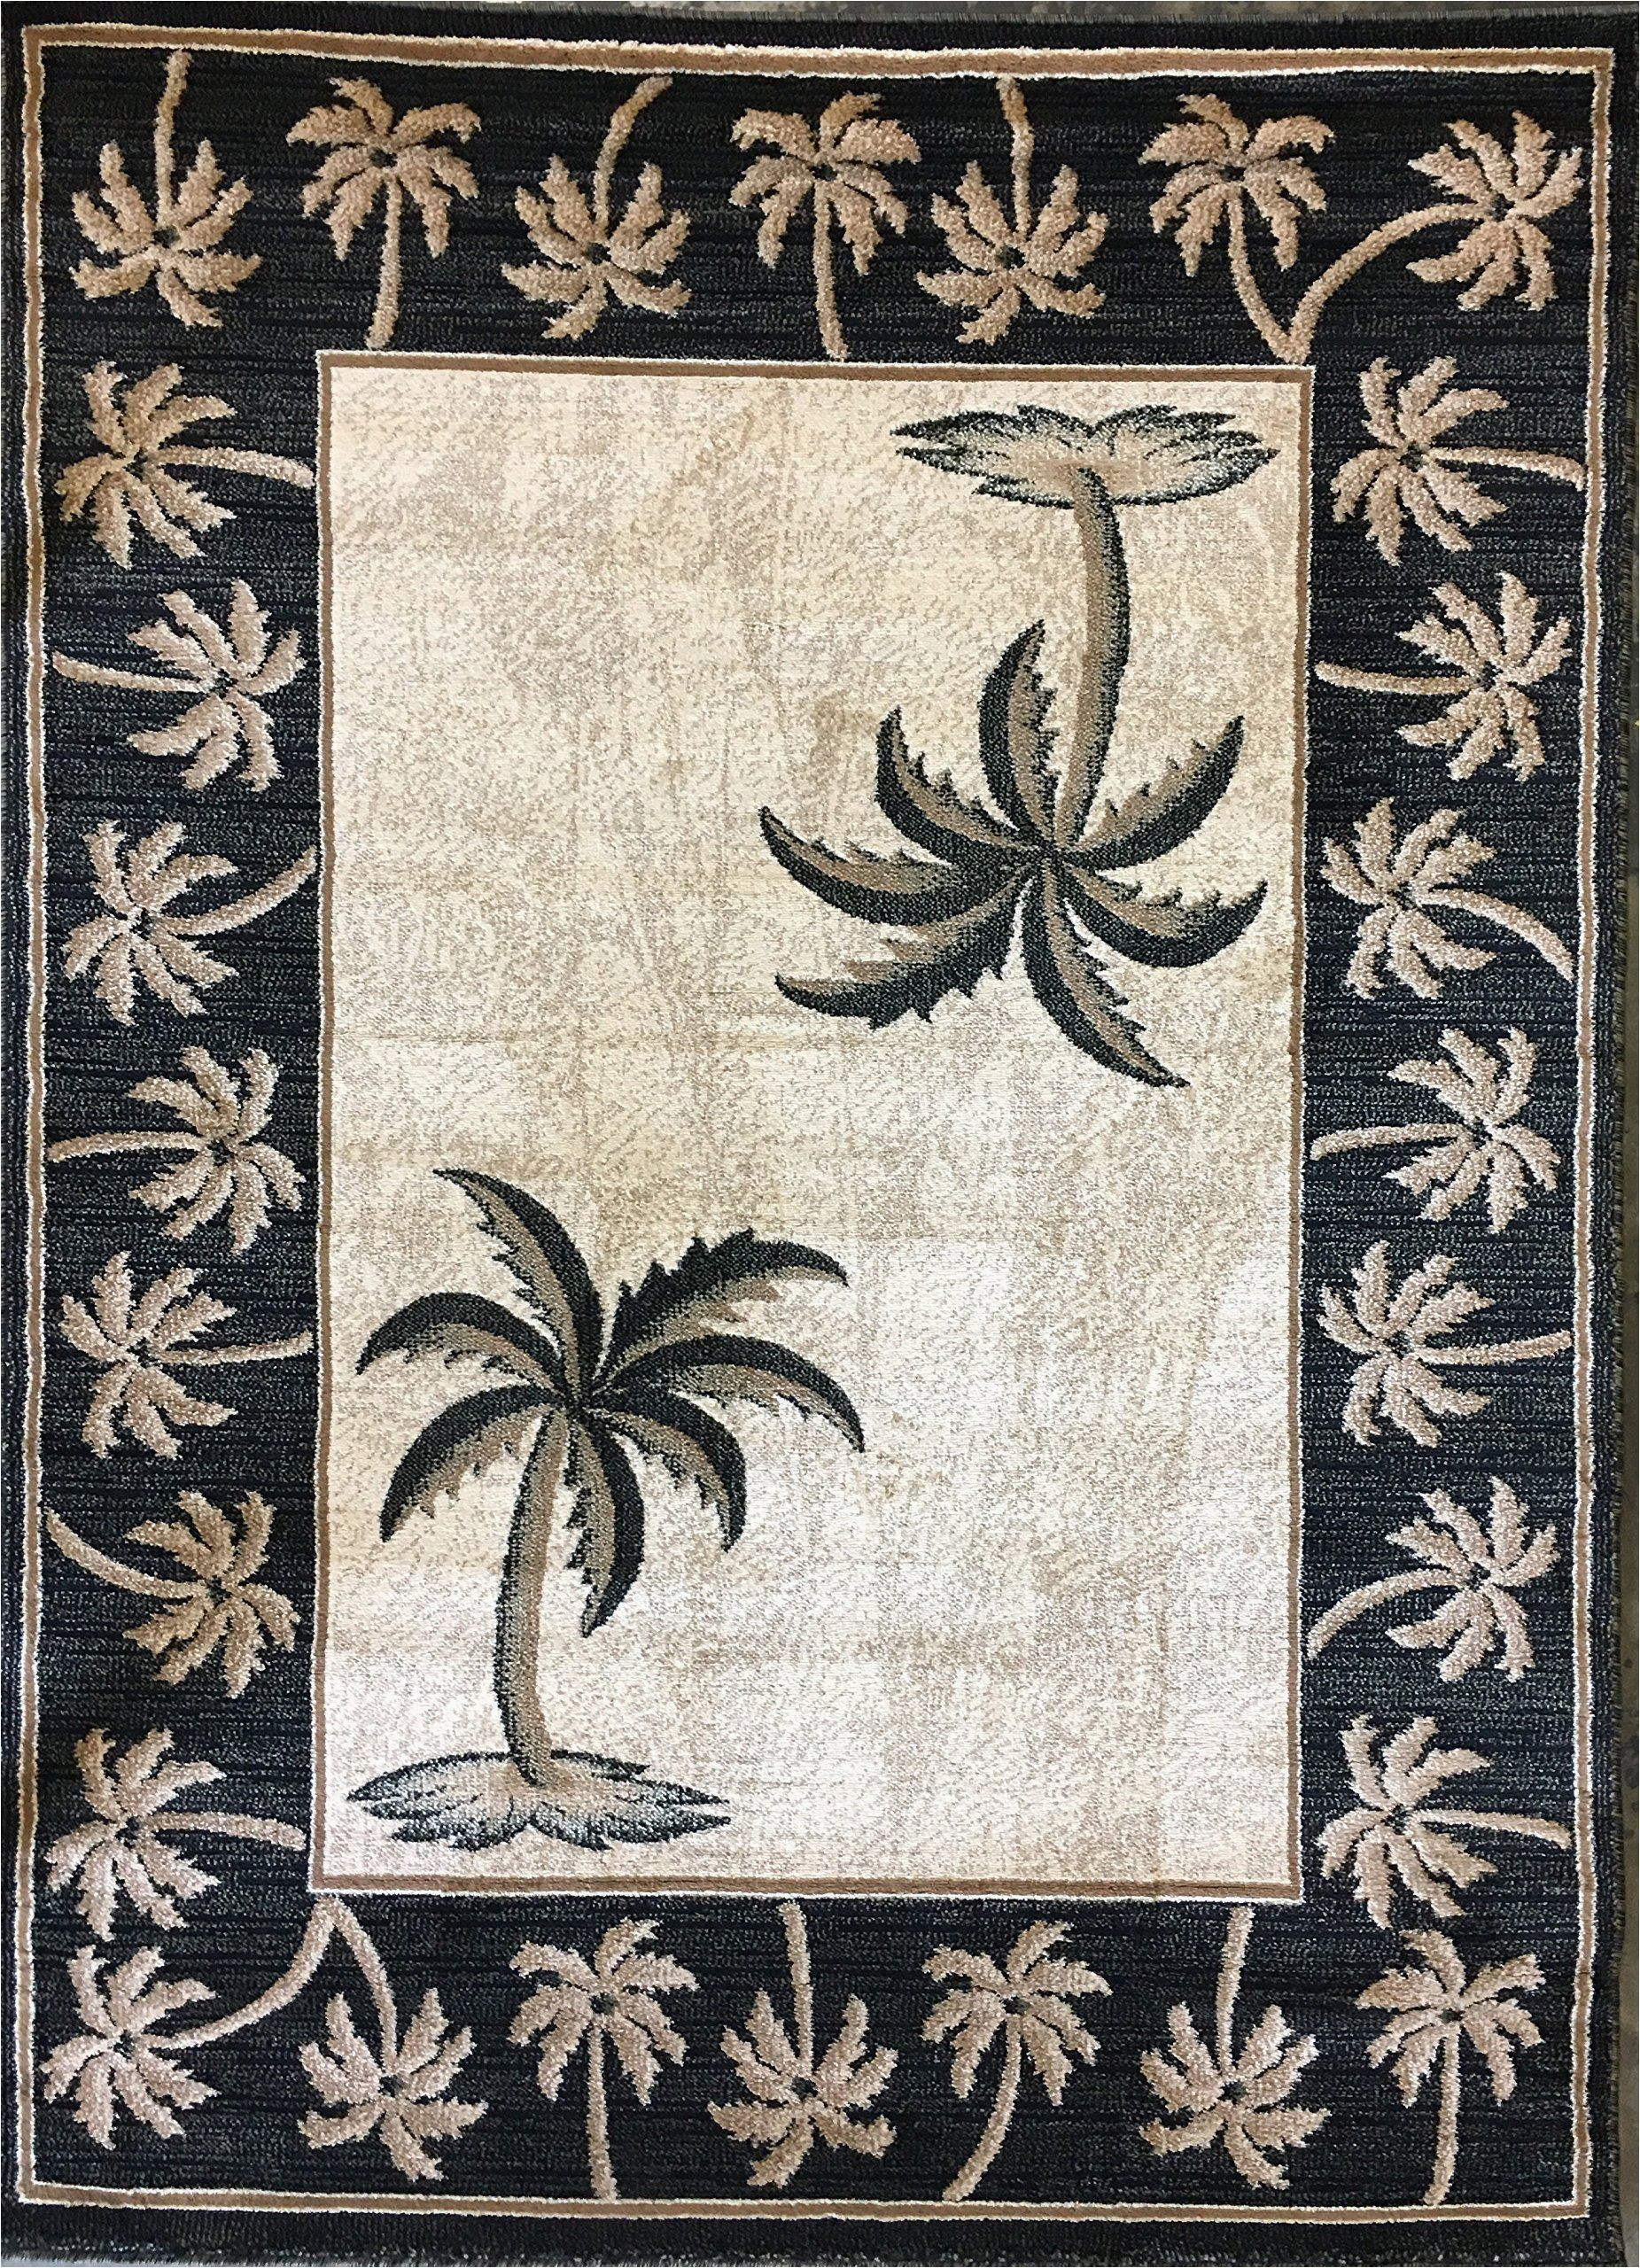 Palm Tree Design area Rugs Palm Tree Tropical 500 000 Point area Rug Black &green